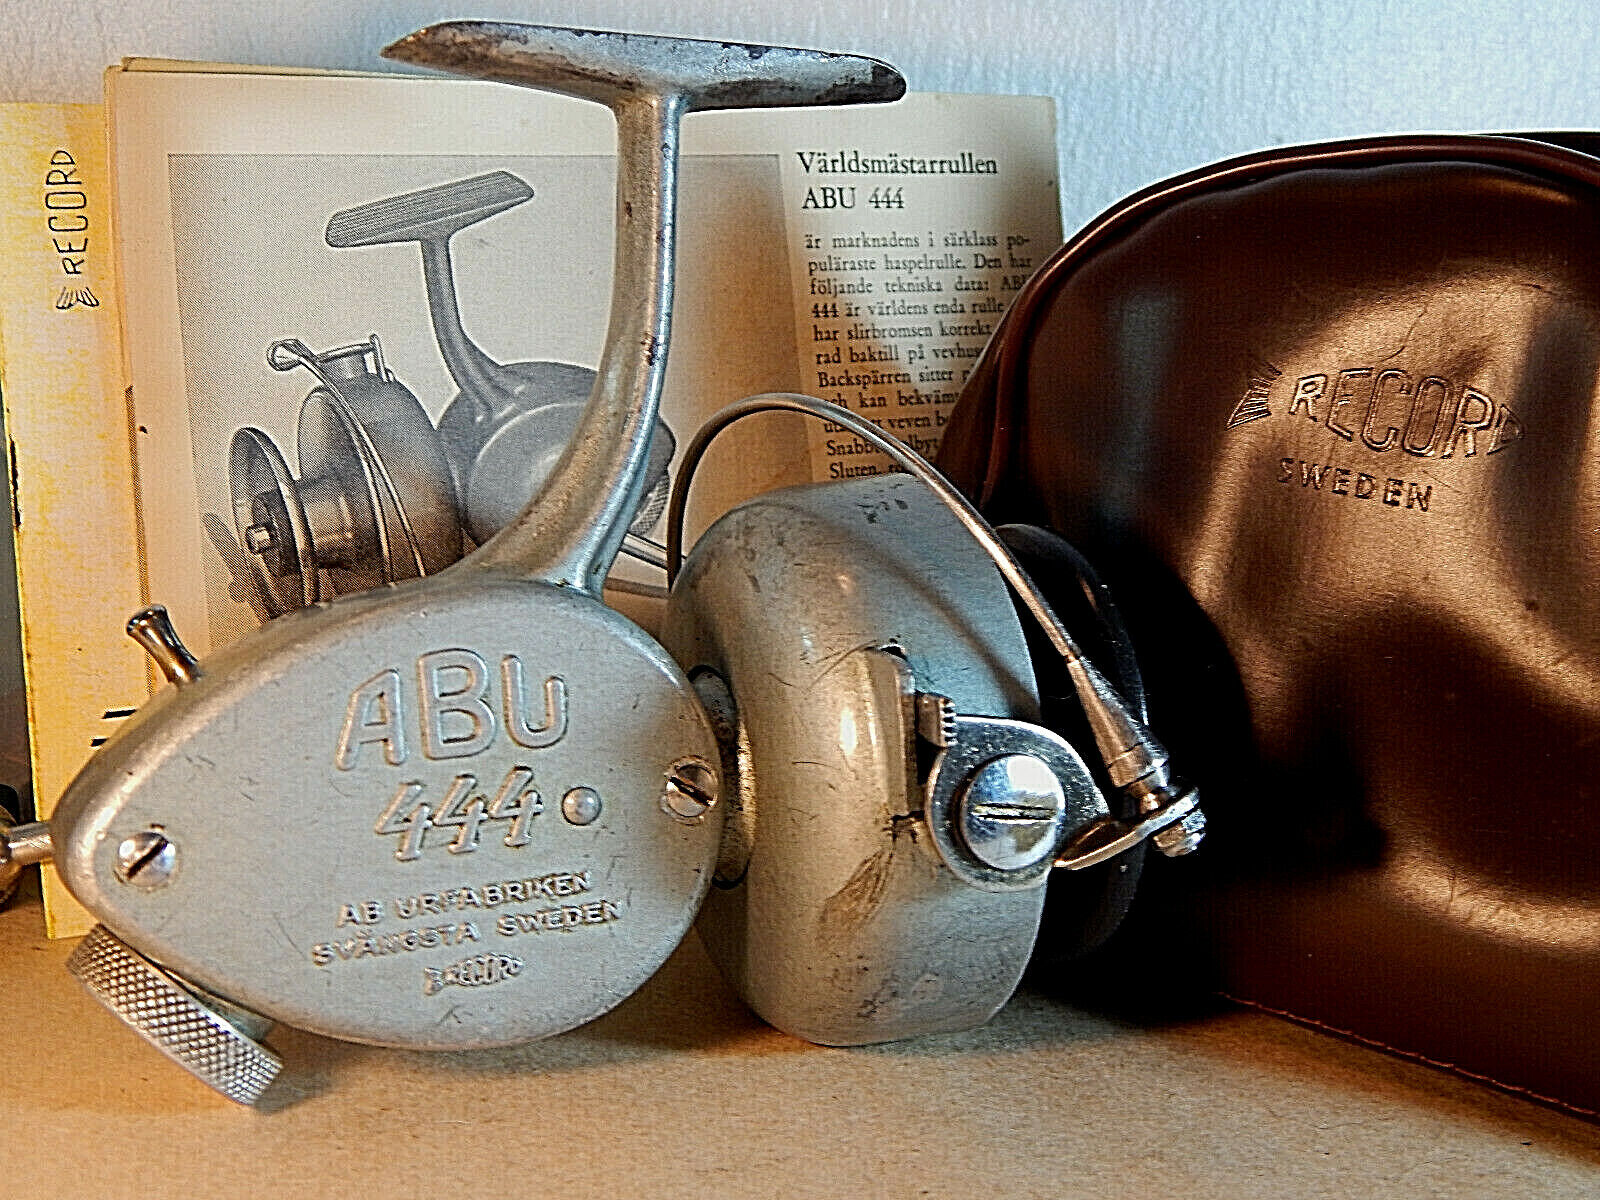 Rare '56 Vintage ABU 444 Record spinning reel  Record pouchusedexcellent